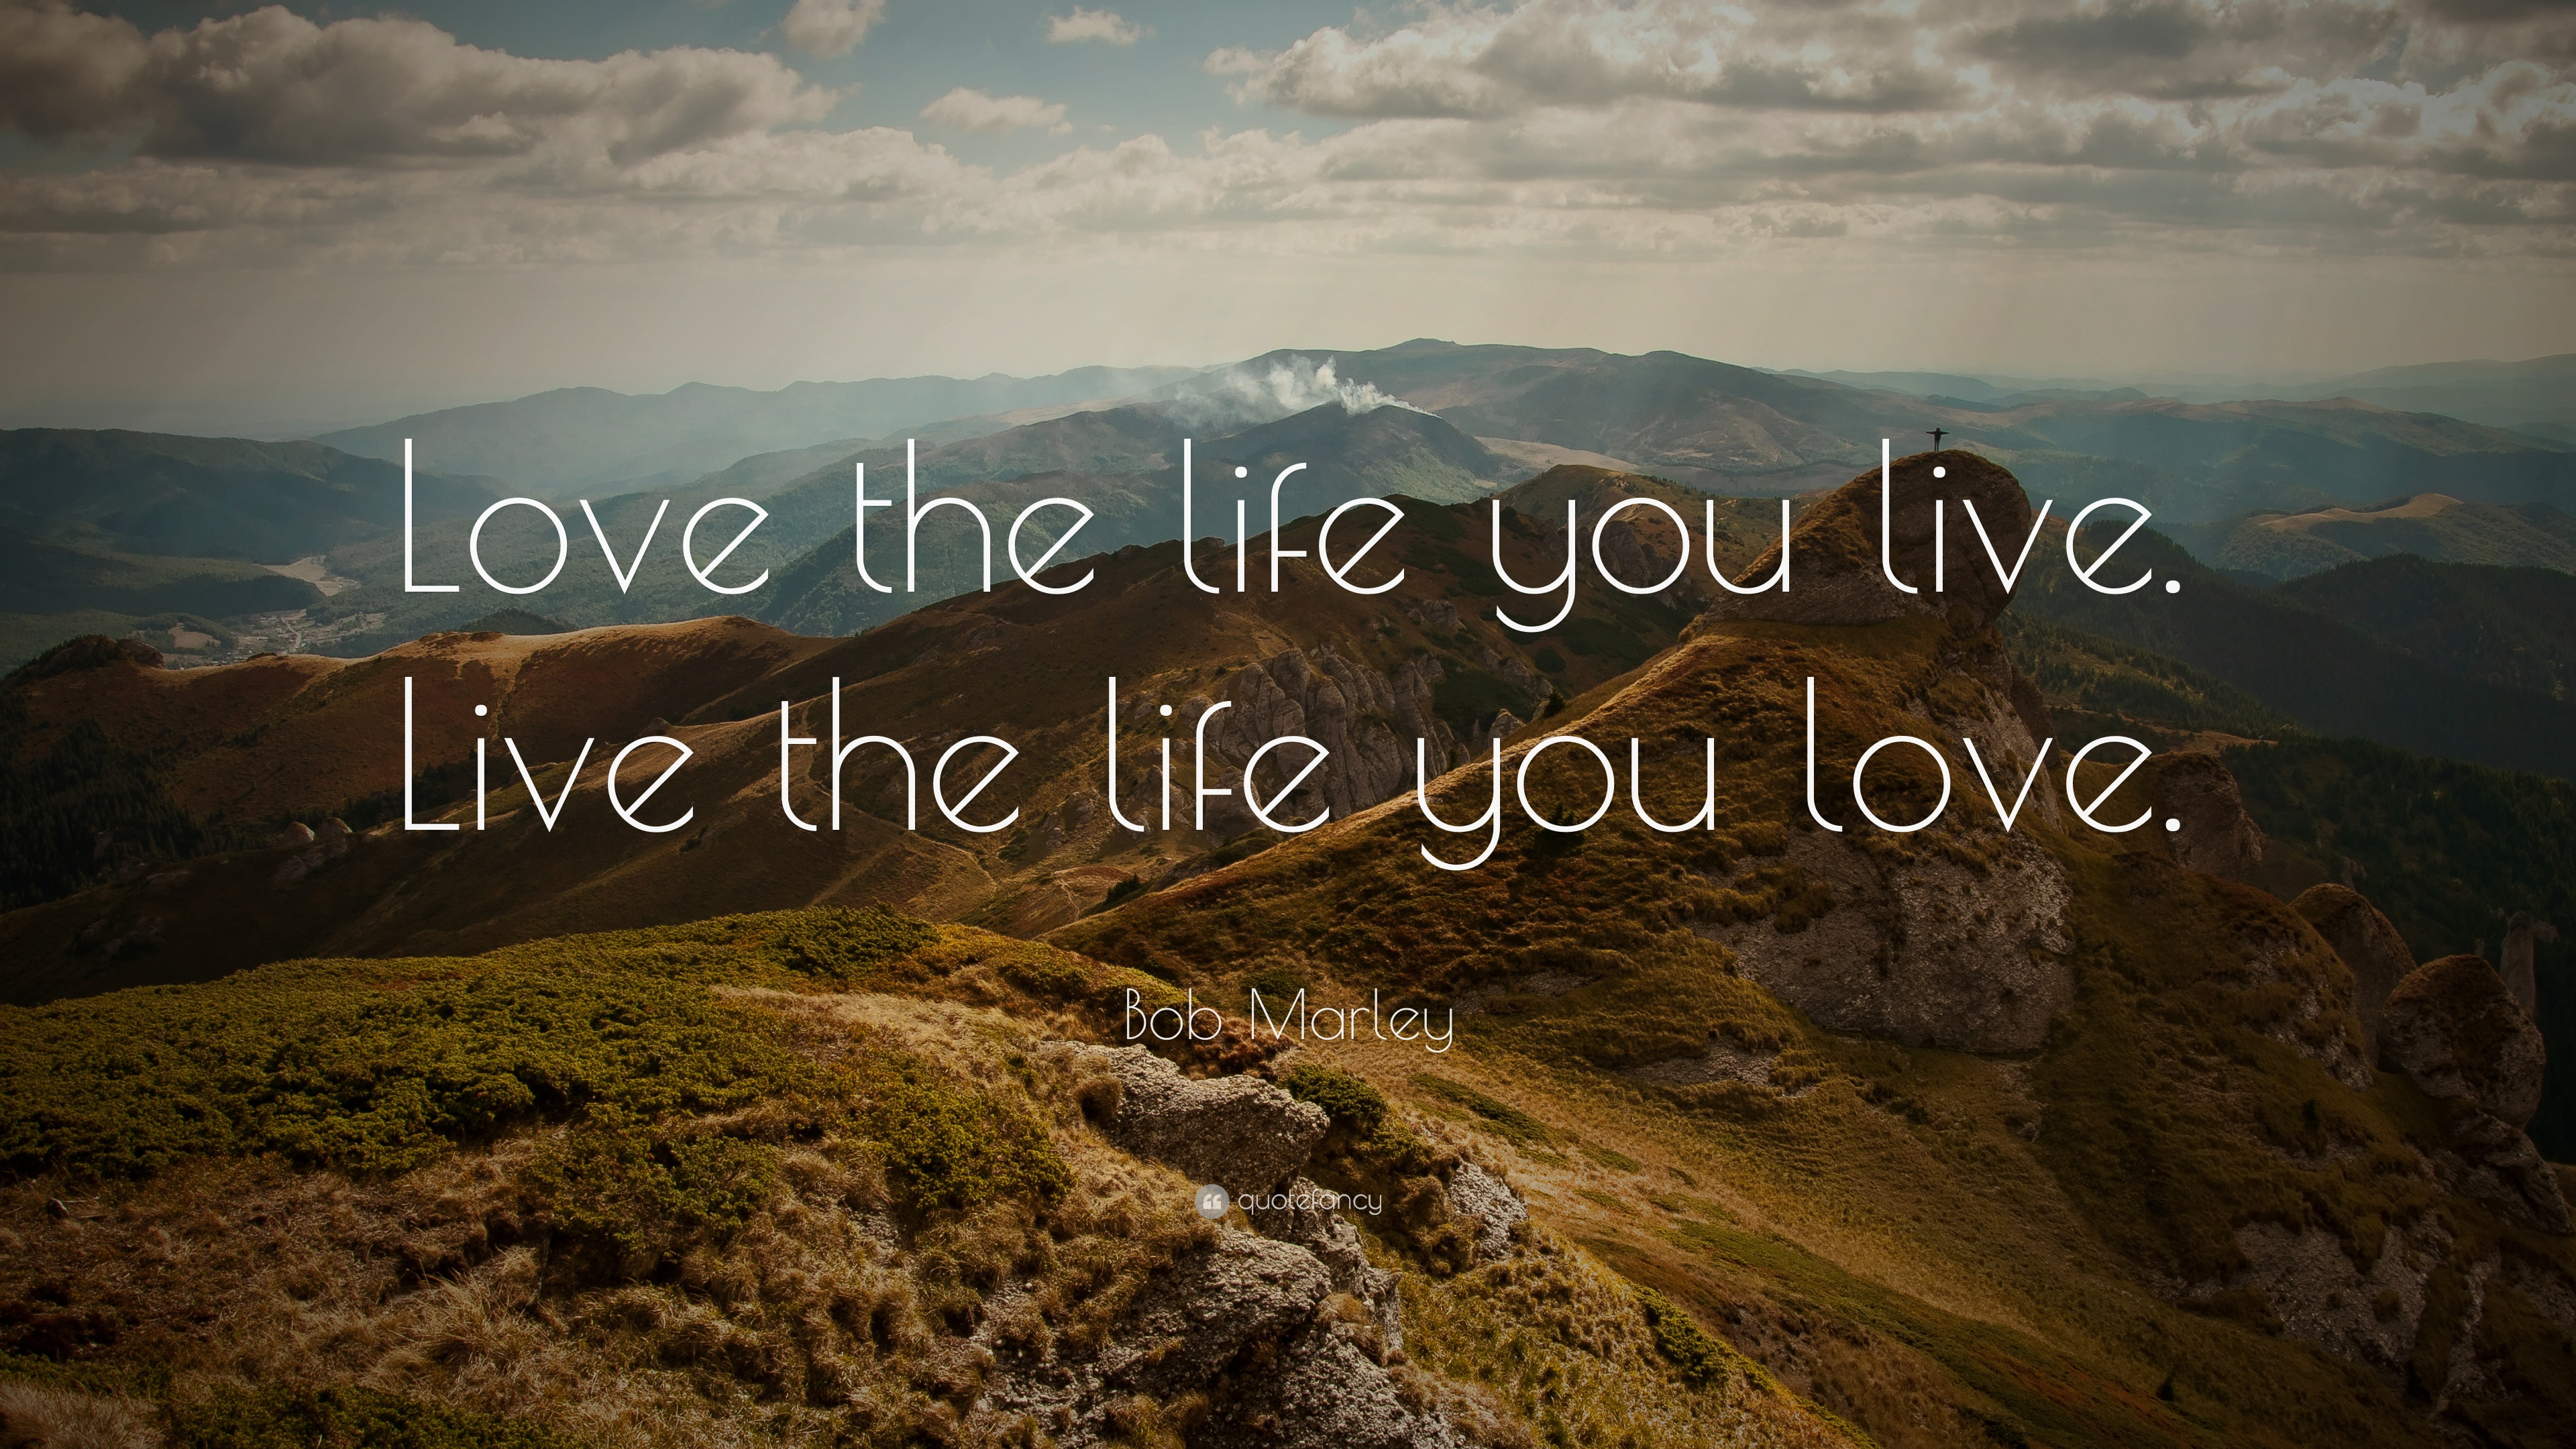 bob marley quote love the life you live live the life you love 15 wallpapers quotefancy. Black Bedroom Furniture Sets. Home Design Ideas